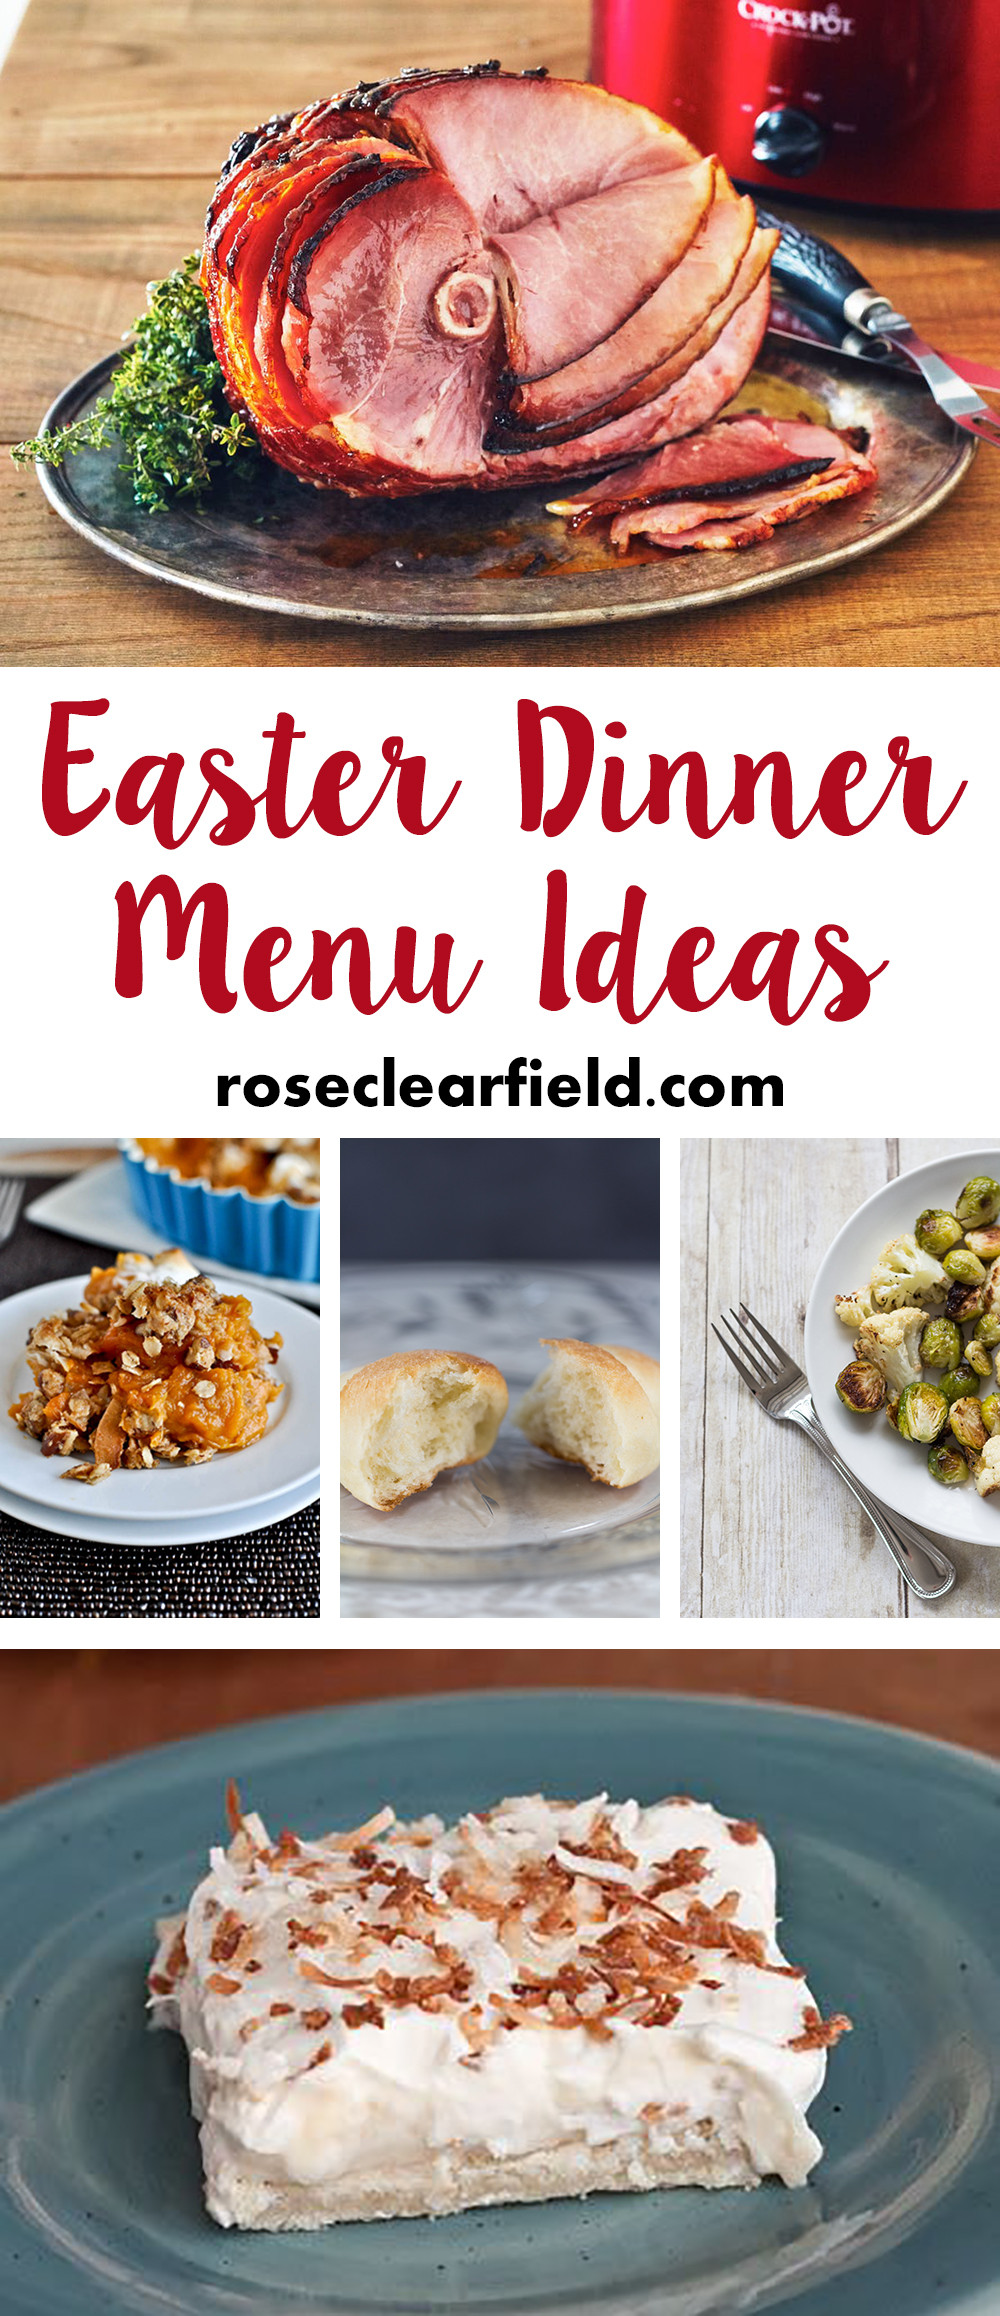 Menu For Easter Dinner  Easter Dinner Menu Ideas • Rose Clearfield